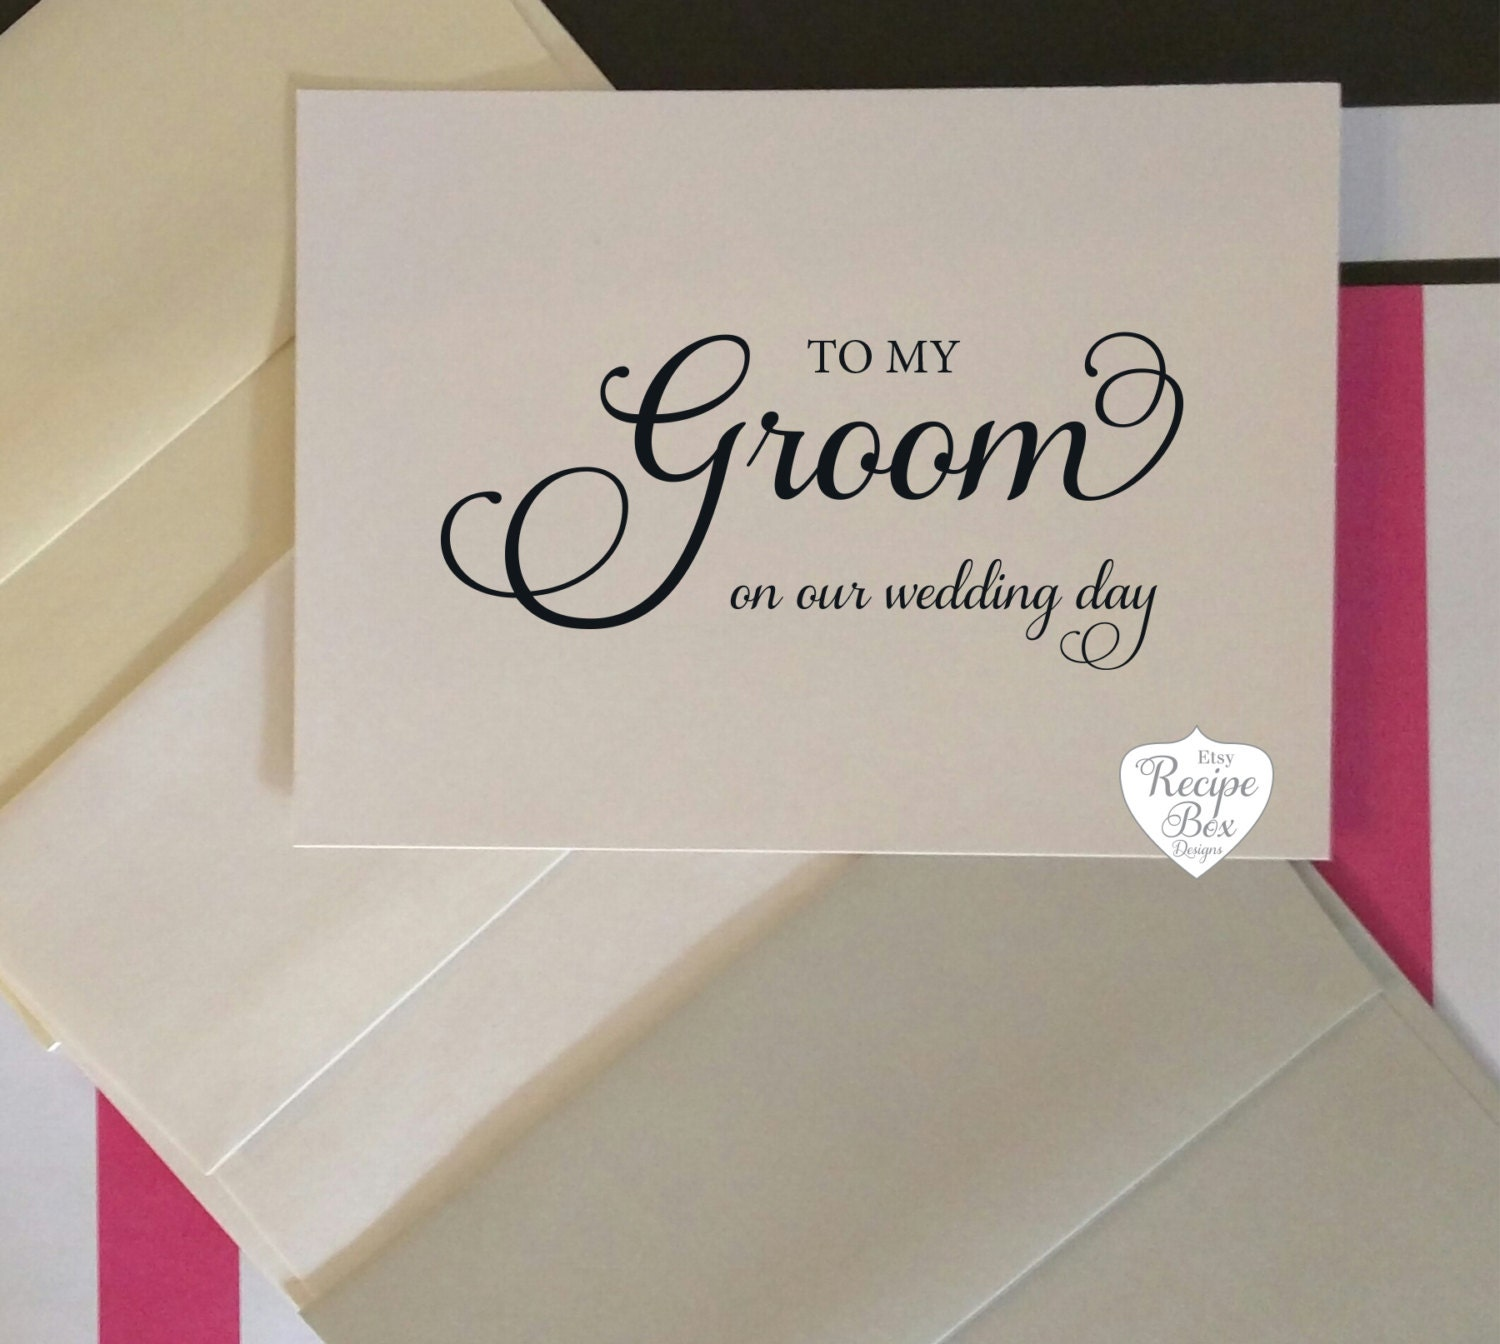 To My Groom Bride On Our Wedding Day Groom Card Wedding Card To